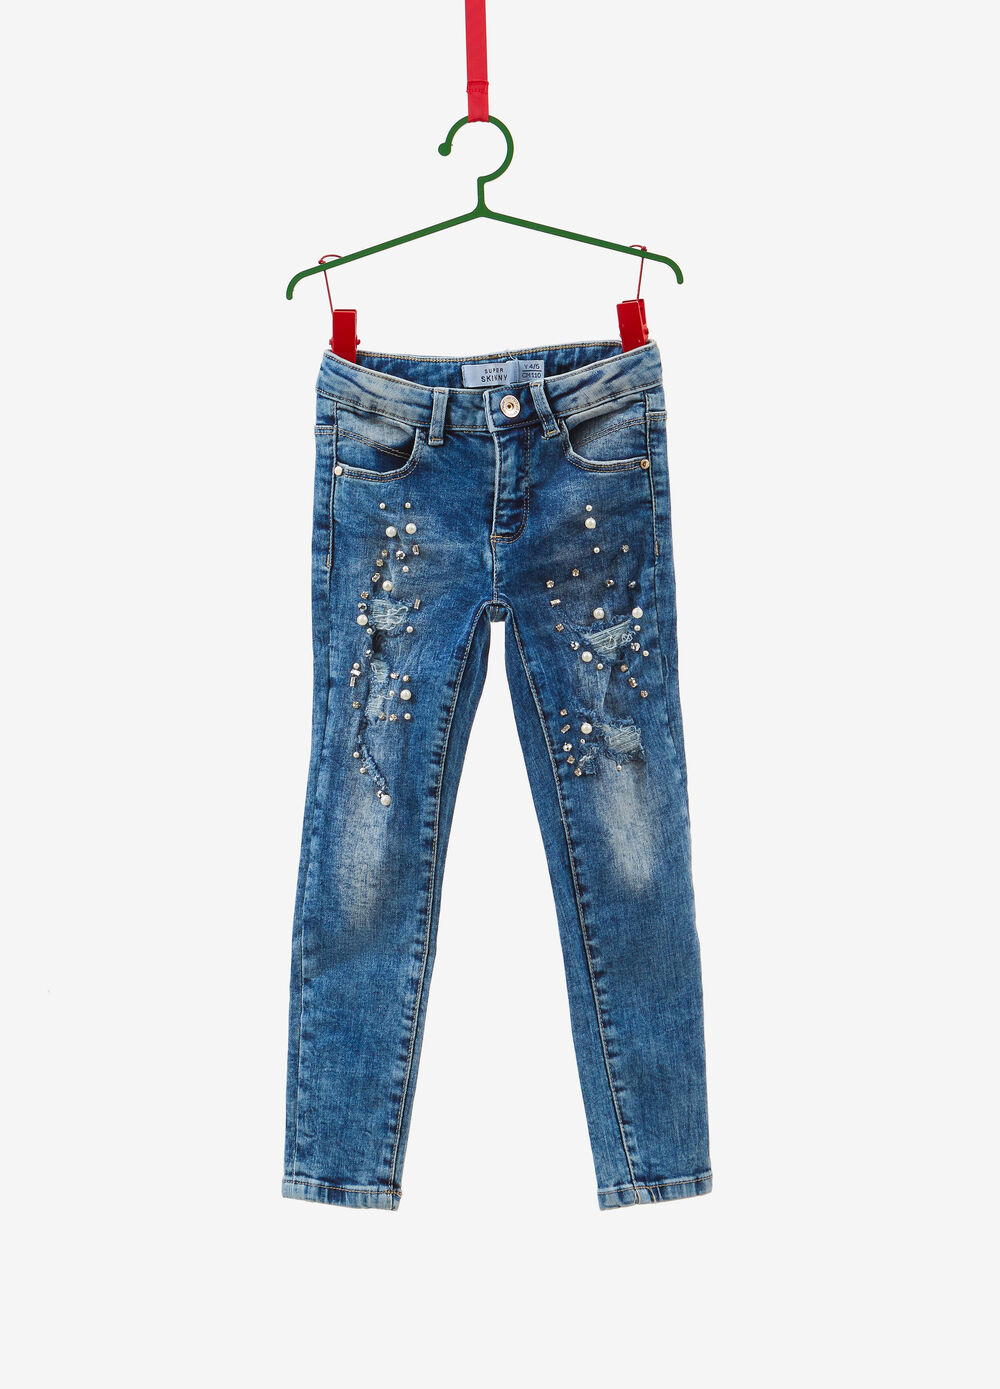 Super-skinny-fit mis-dyed jeans with beads and diamantés